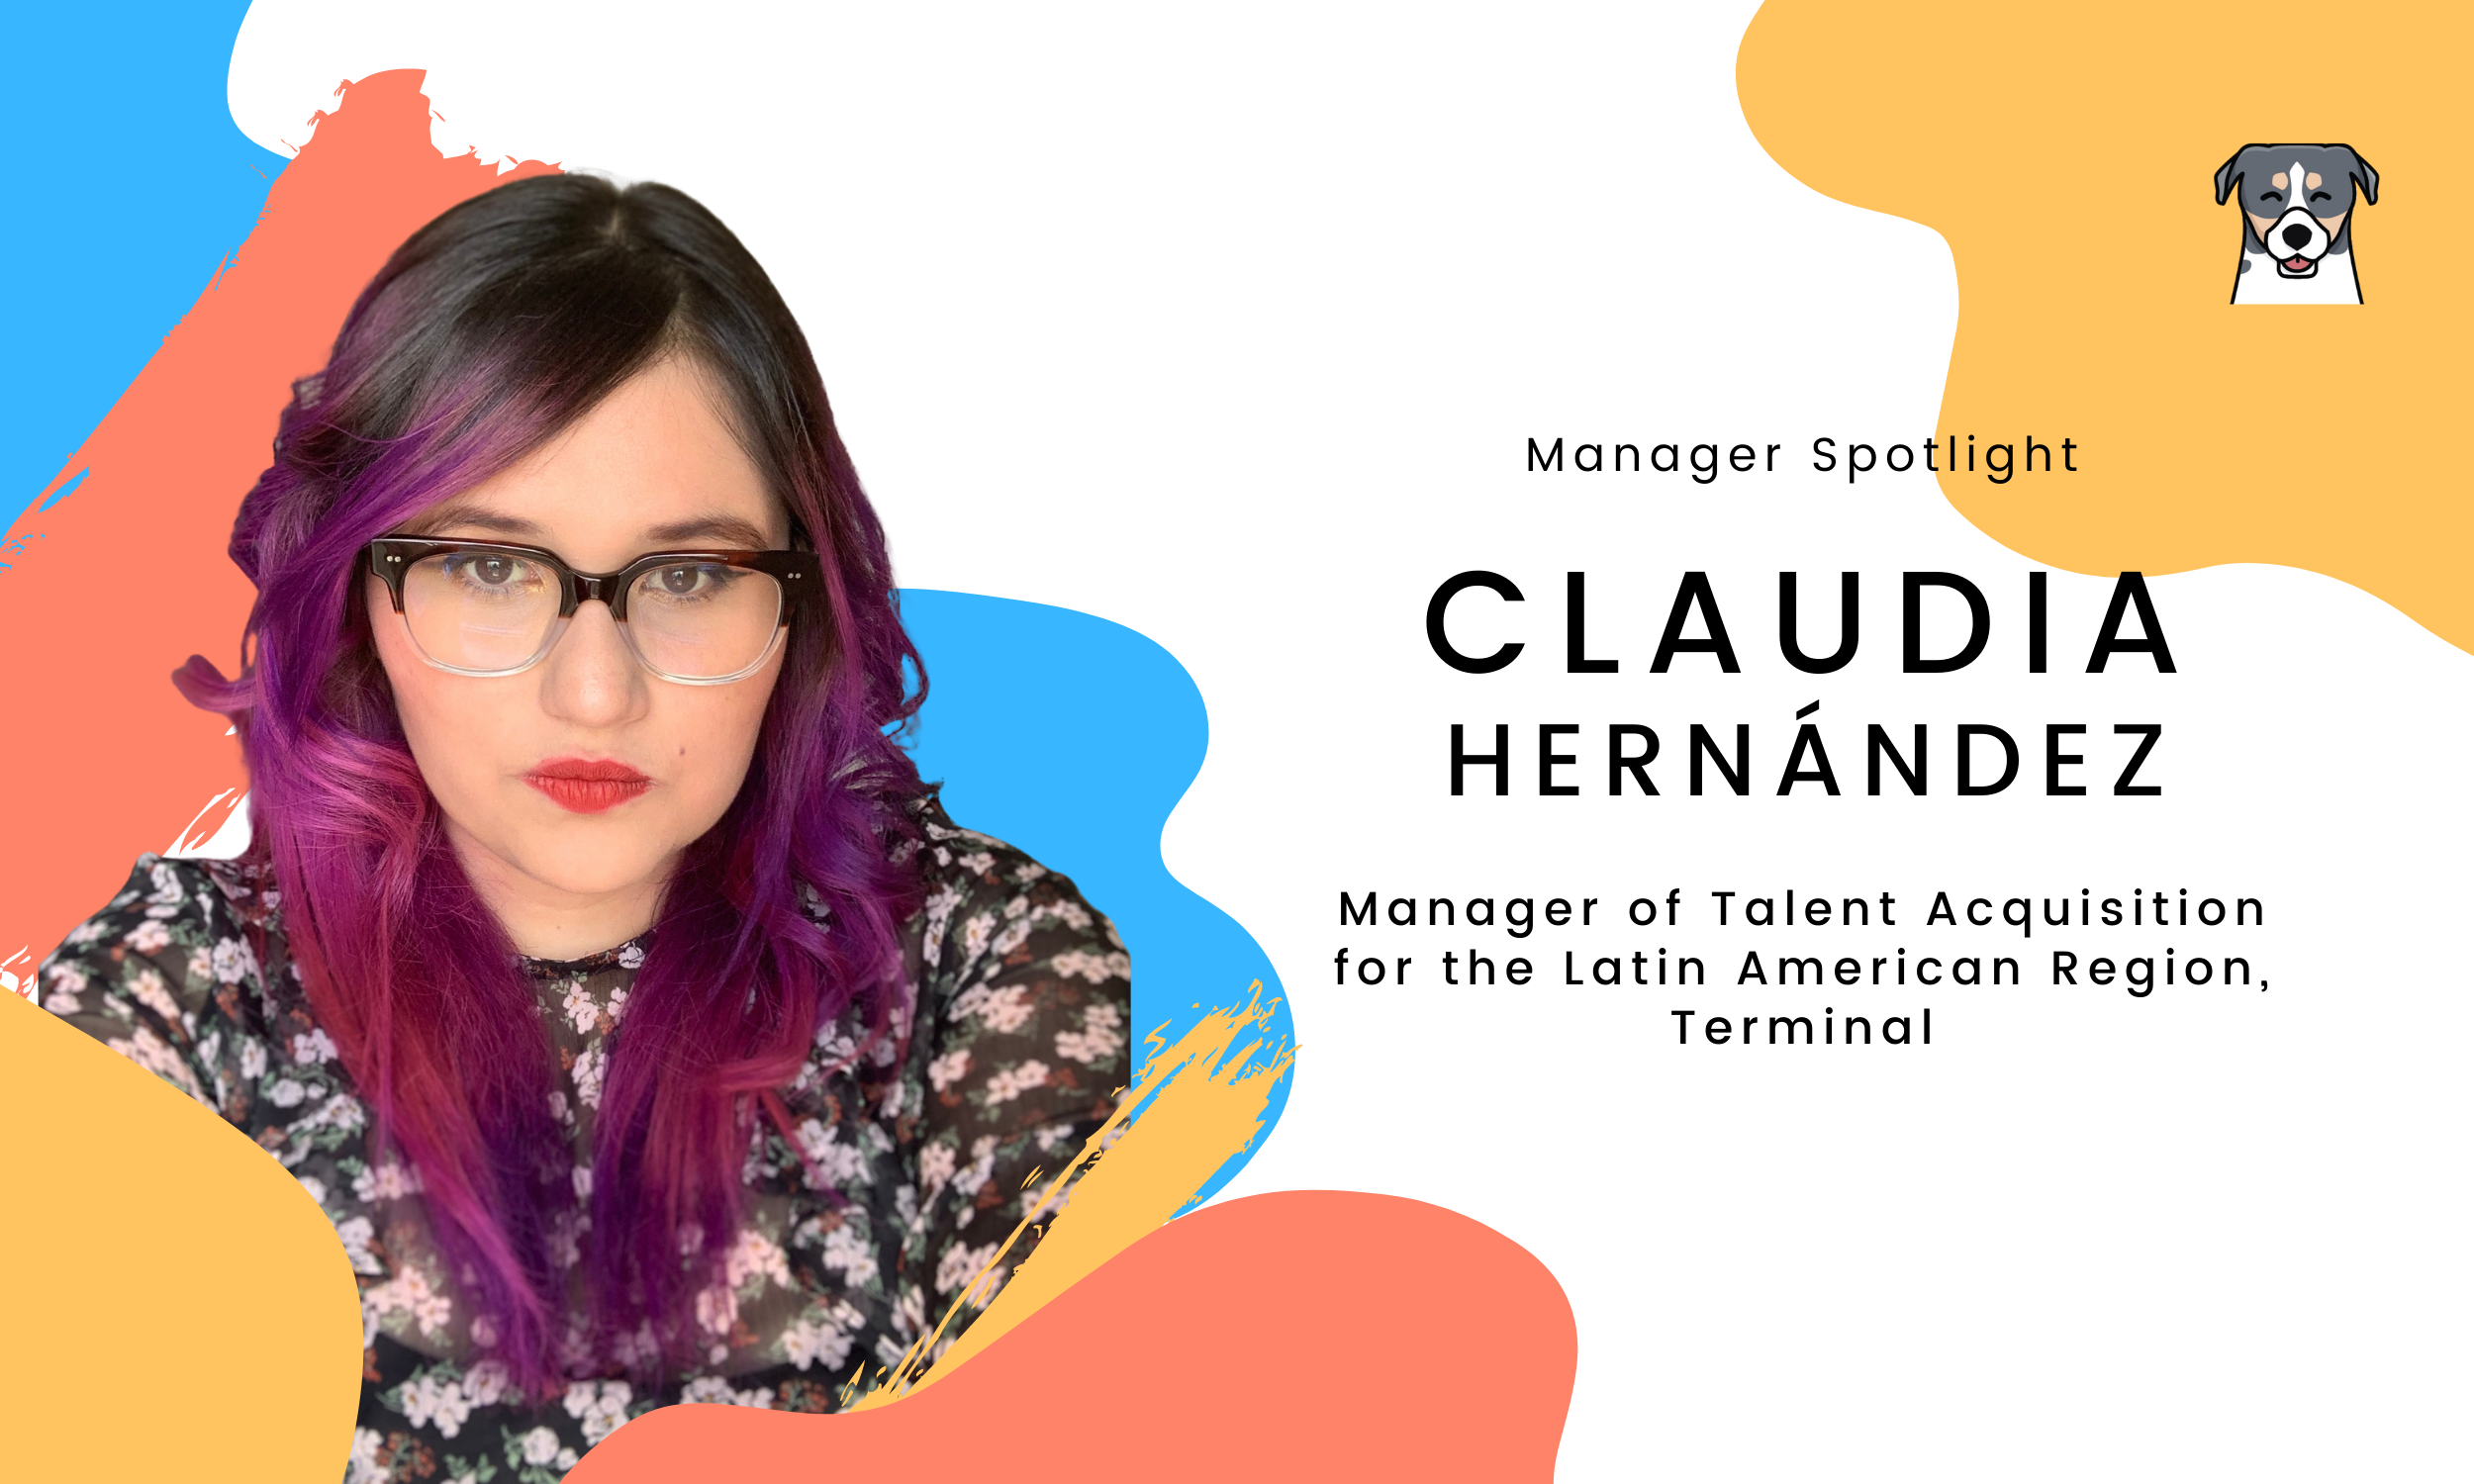 This week we spoke to Claudia, Manager of Talent Acquisition at Terminal. She shares her best tips for work-life balance, finding time for team building, and managing a busy schedule.